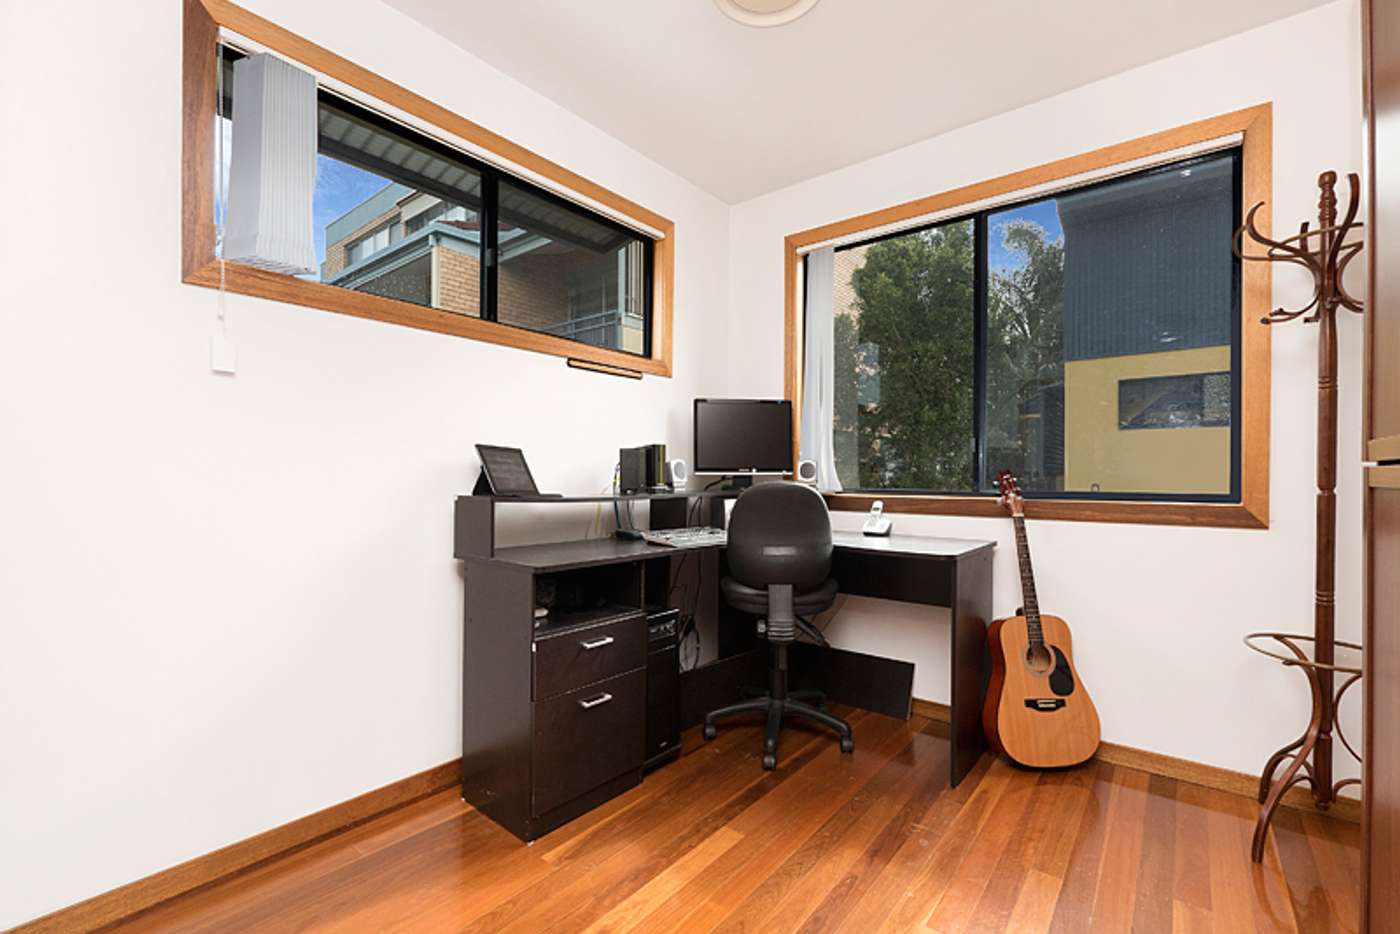 Sixth view of Homely townhouse listing, 1/11 Burt St, Auchenflower QLD 4066